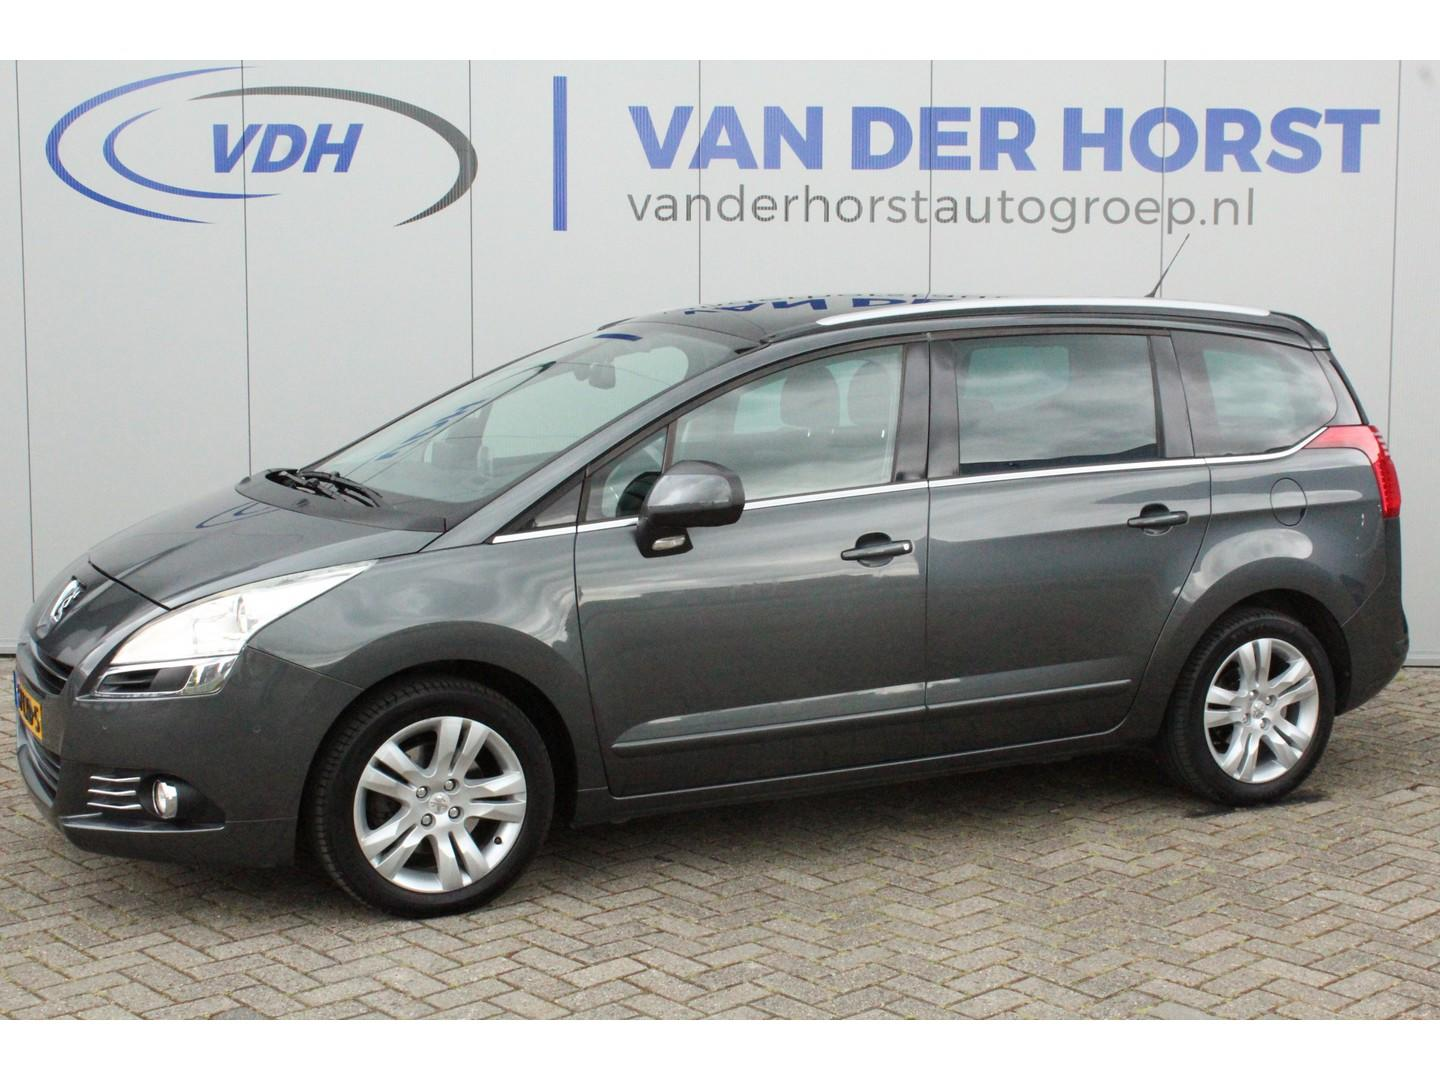 Peugeot 5008 1.6-157pk thp executive 7pers. panodak, navi, airco. nette, luxe 7persoons reiswagen.